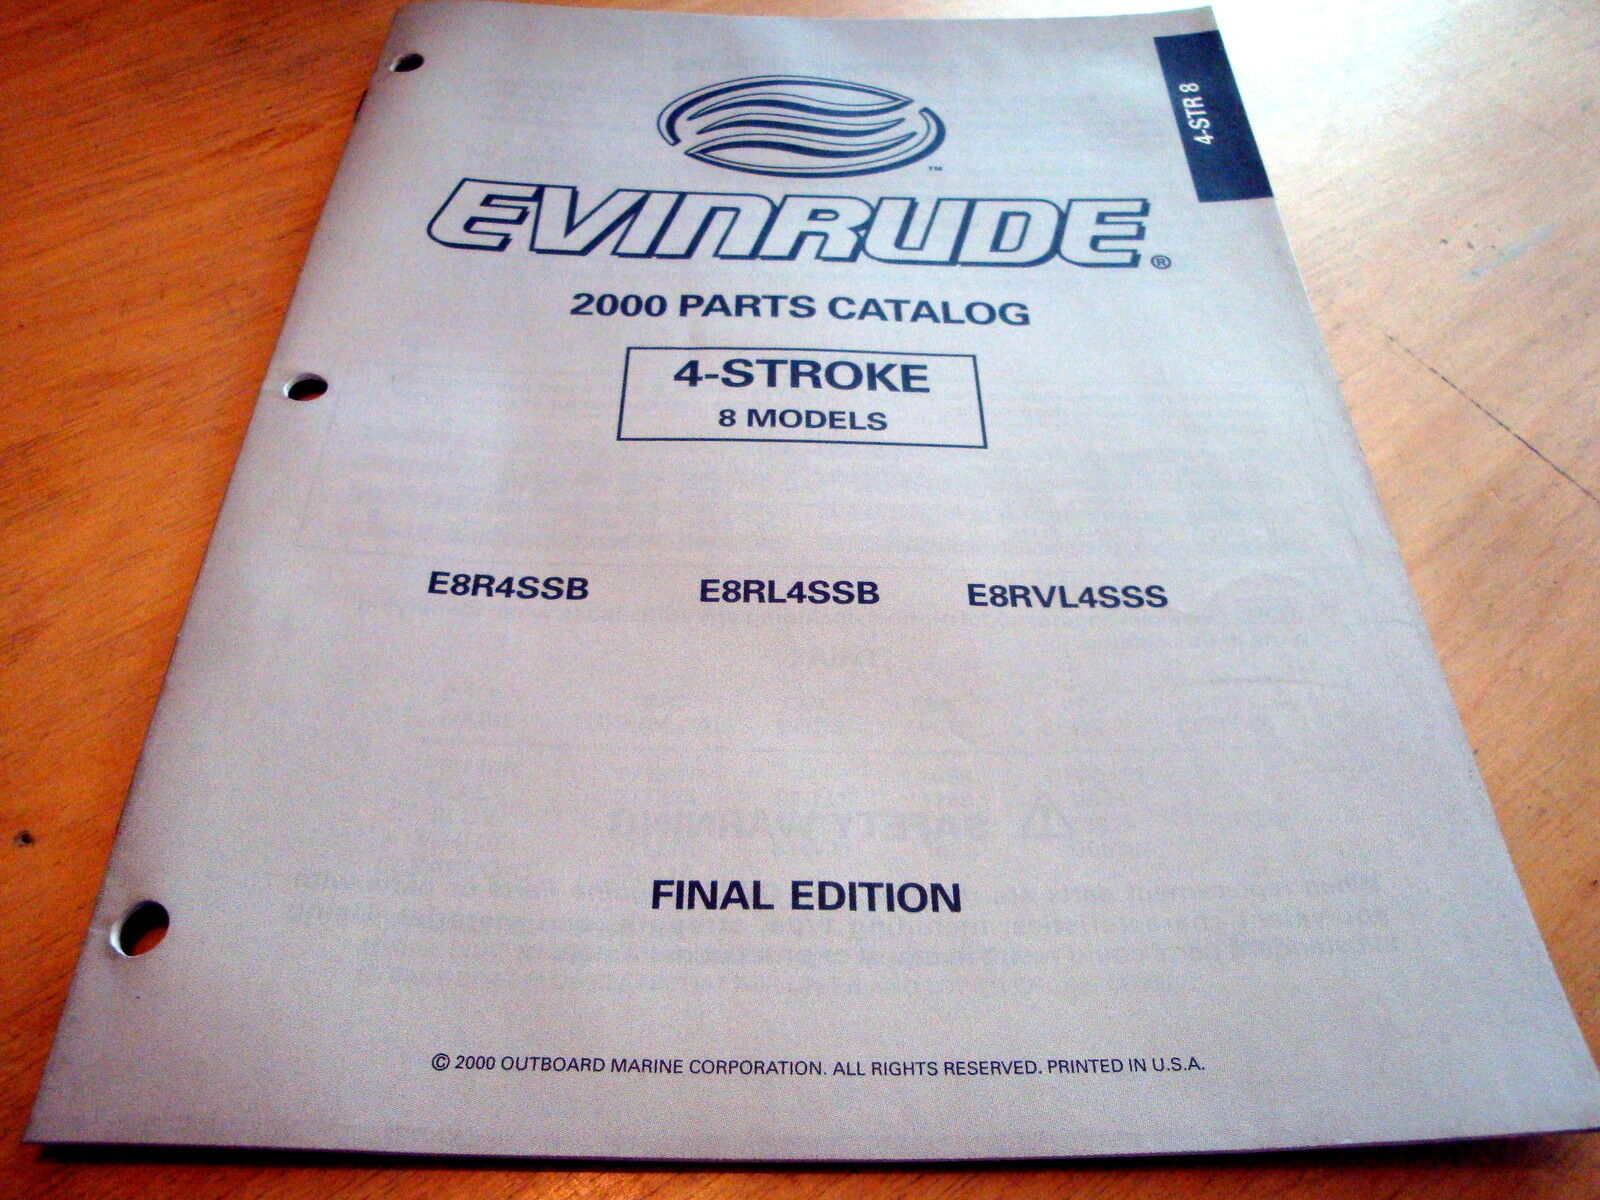 Evinrude 8 HP 4-Stroke Outboard Motor Catalog Parts List Book Manual 2000  OMC 1 of 1Only 1 available ...